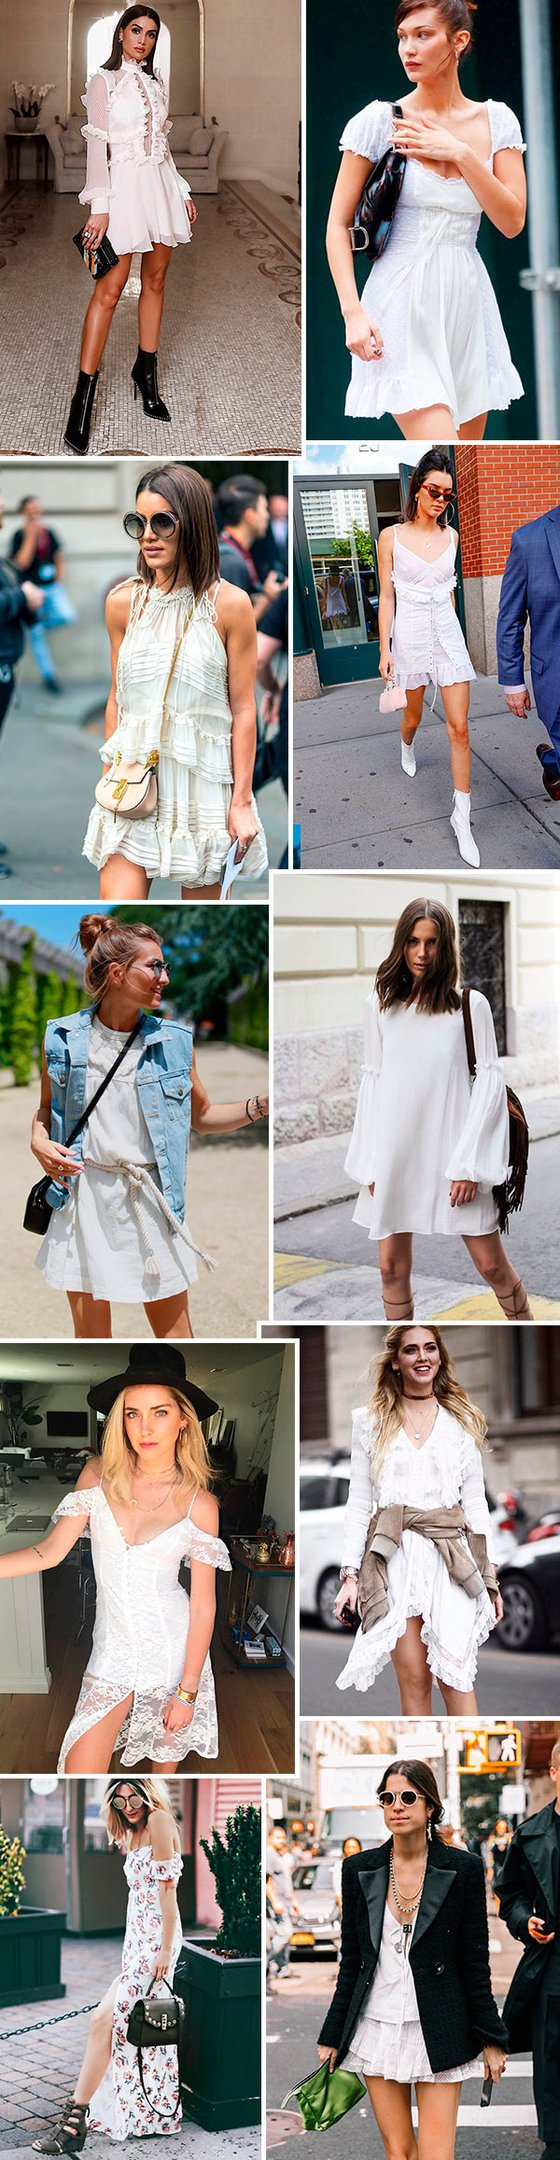 Trendy Now: white boho dress